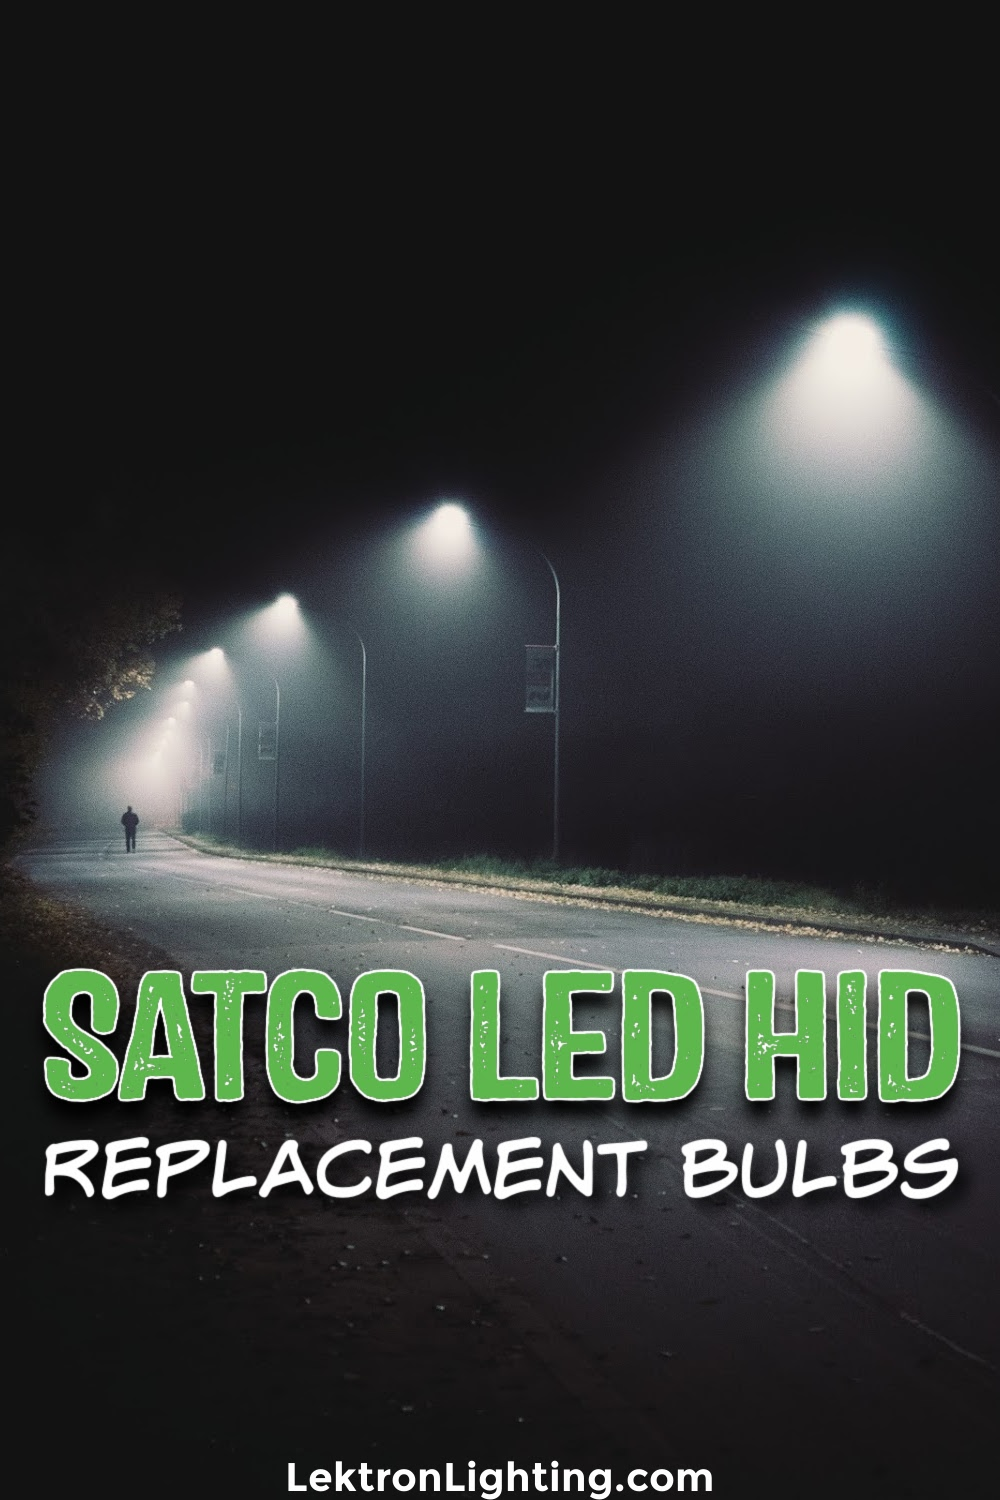 Satco LED HID replacement bulbs are a great way to drastically lower energy costs for businesses that utilize HID lighting.